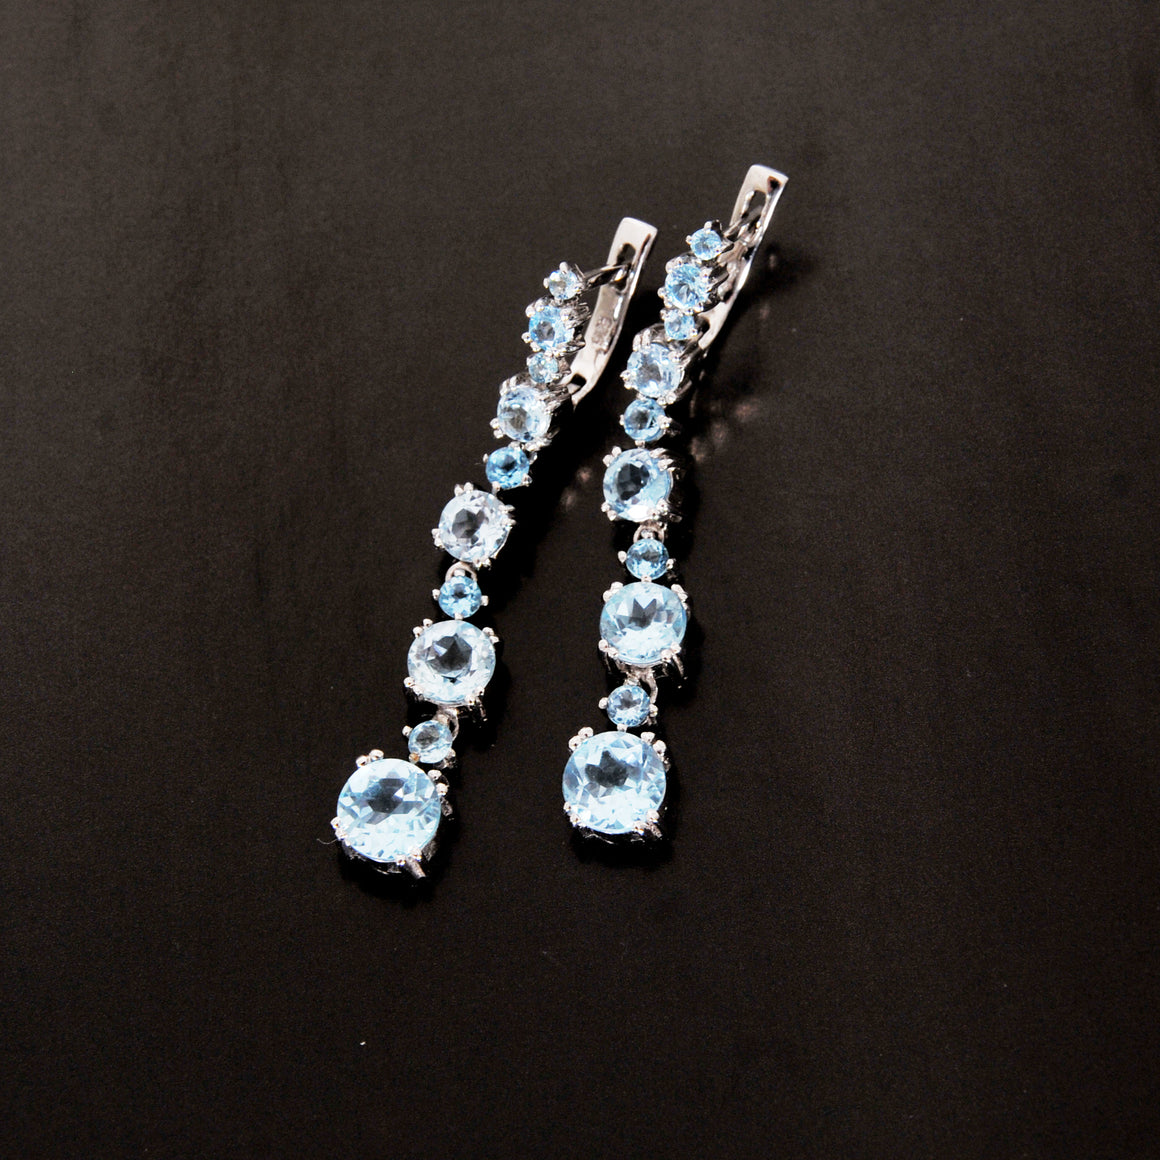 Blue Topaz long earring